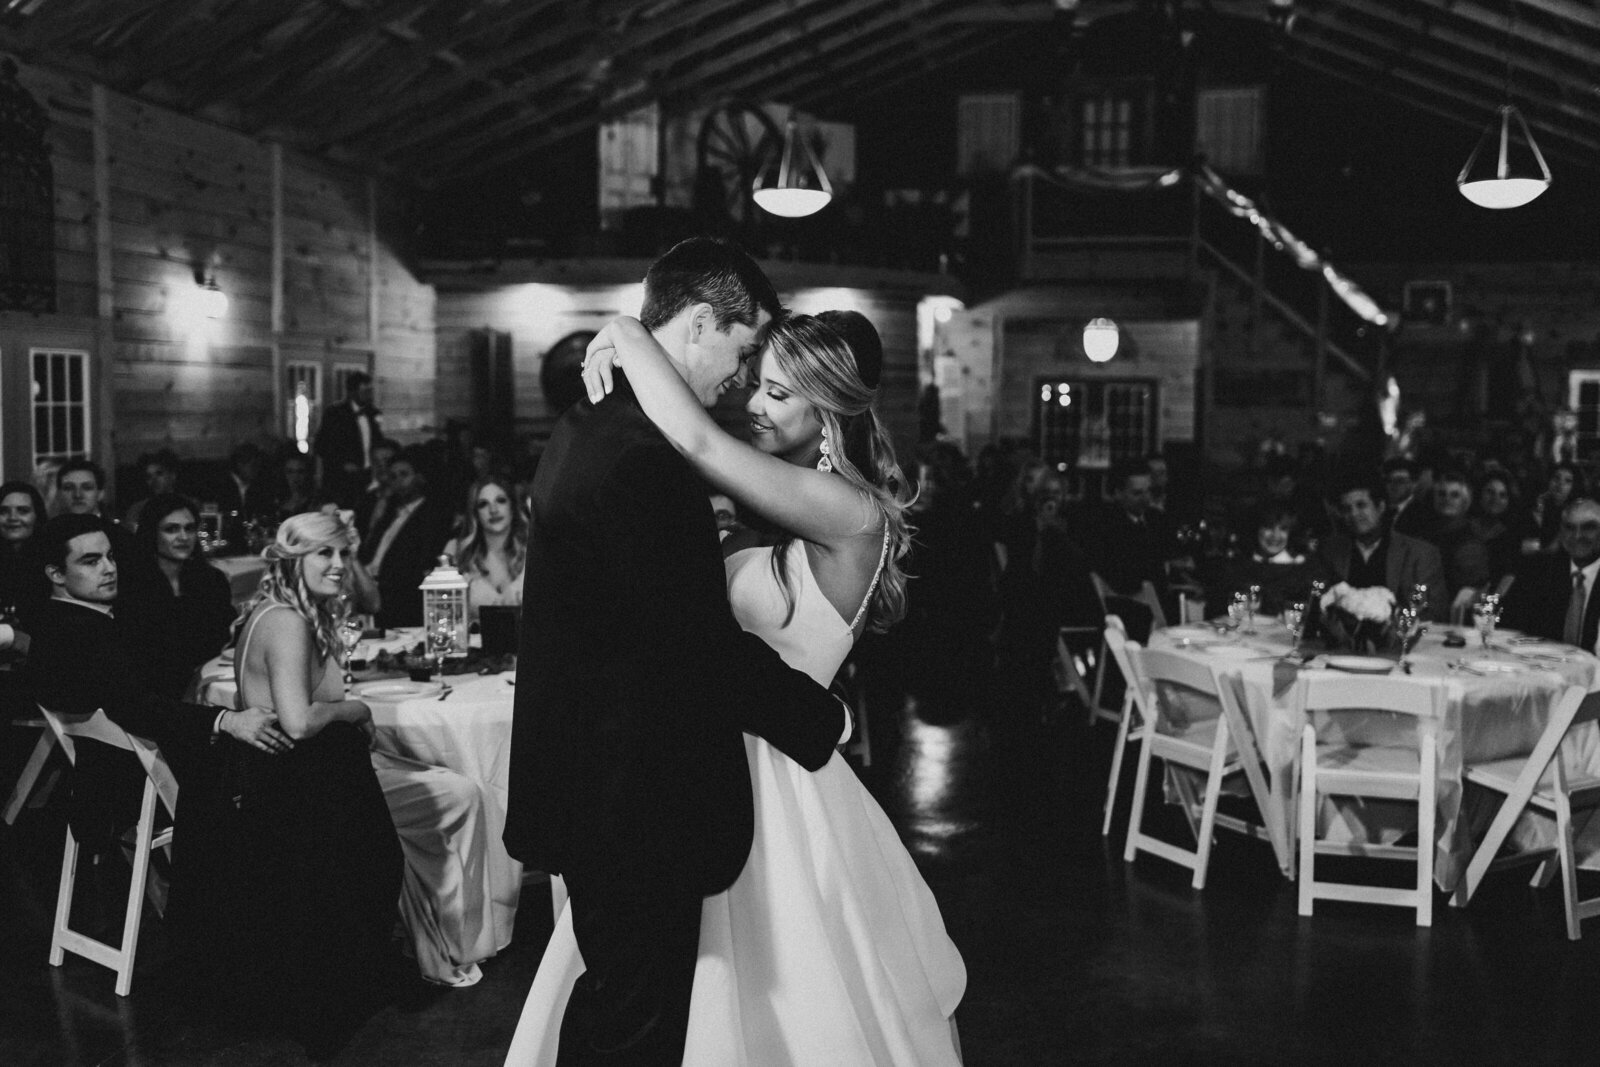 J.Michelle Photography photographs a bride and groom during their first dance at a vintage oaks farm wedding in Athens, Ga